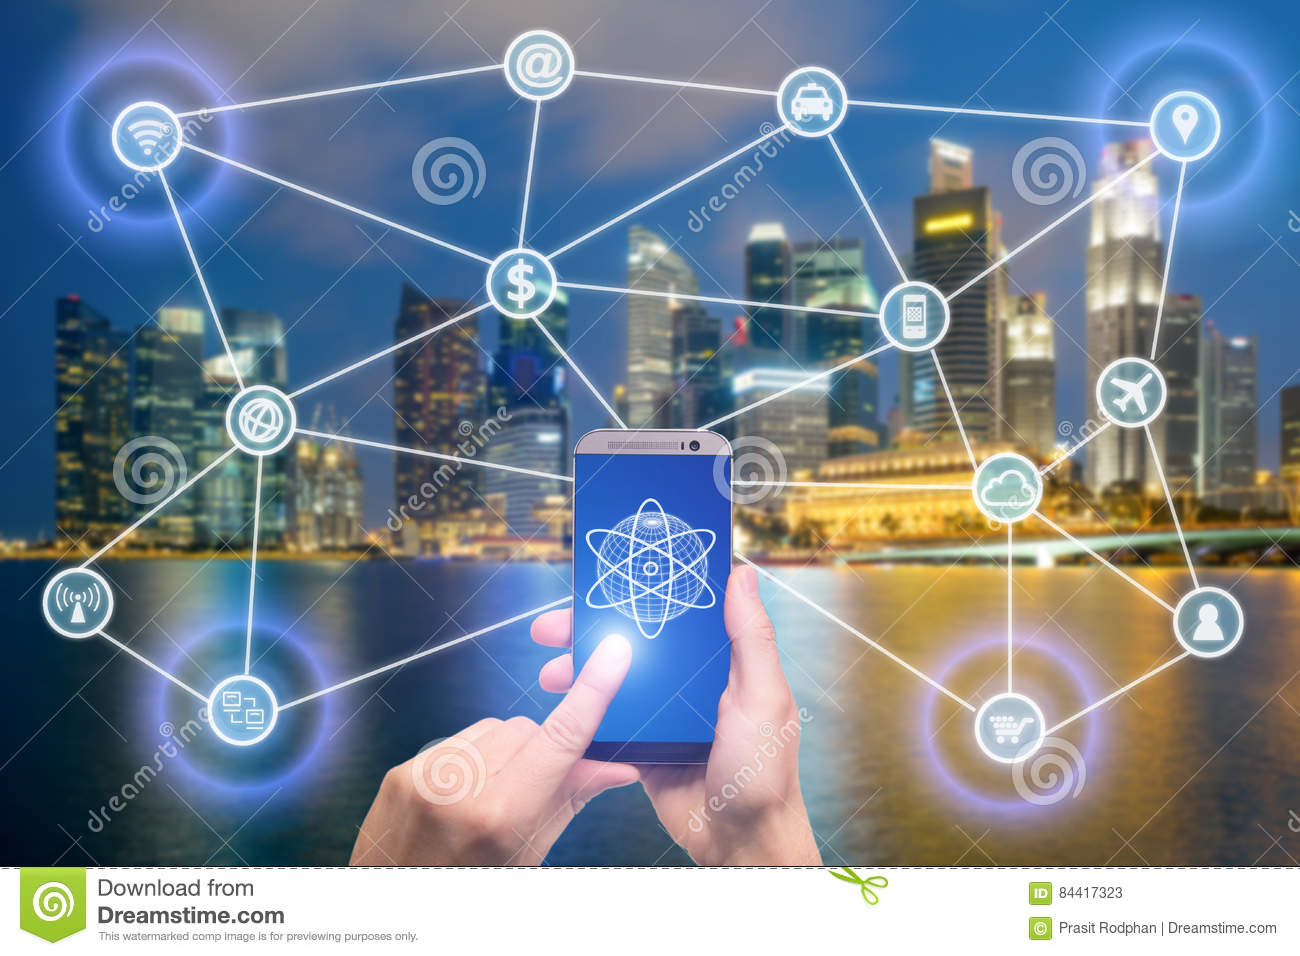 Network of connected mobile devices such as smart phone, tablet, thermostat or smart home. Internet of things and mobile